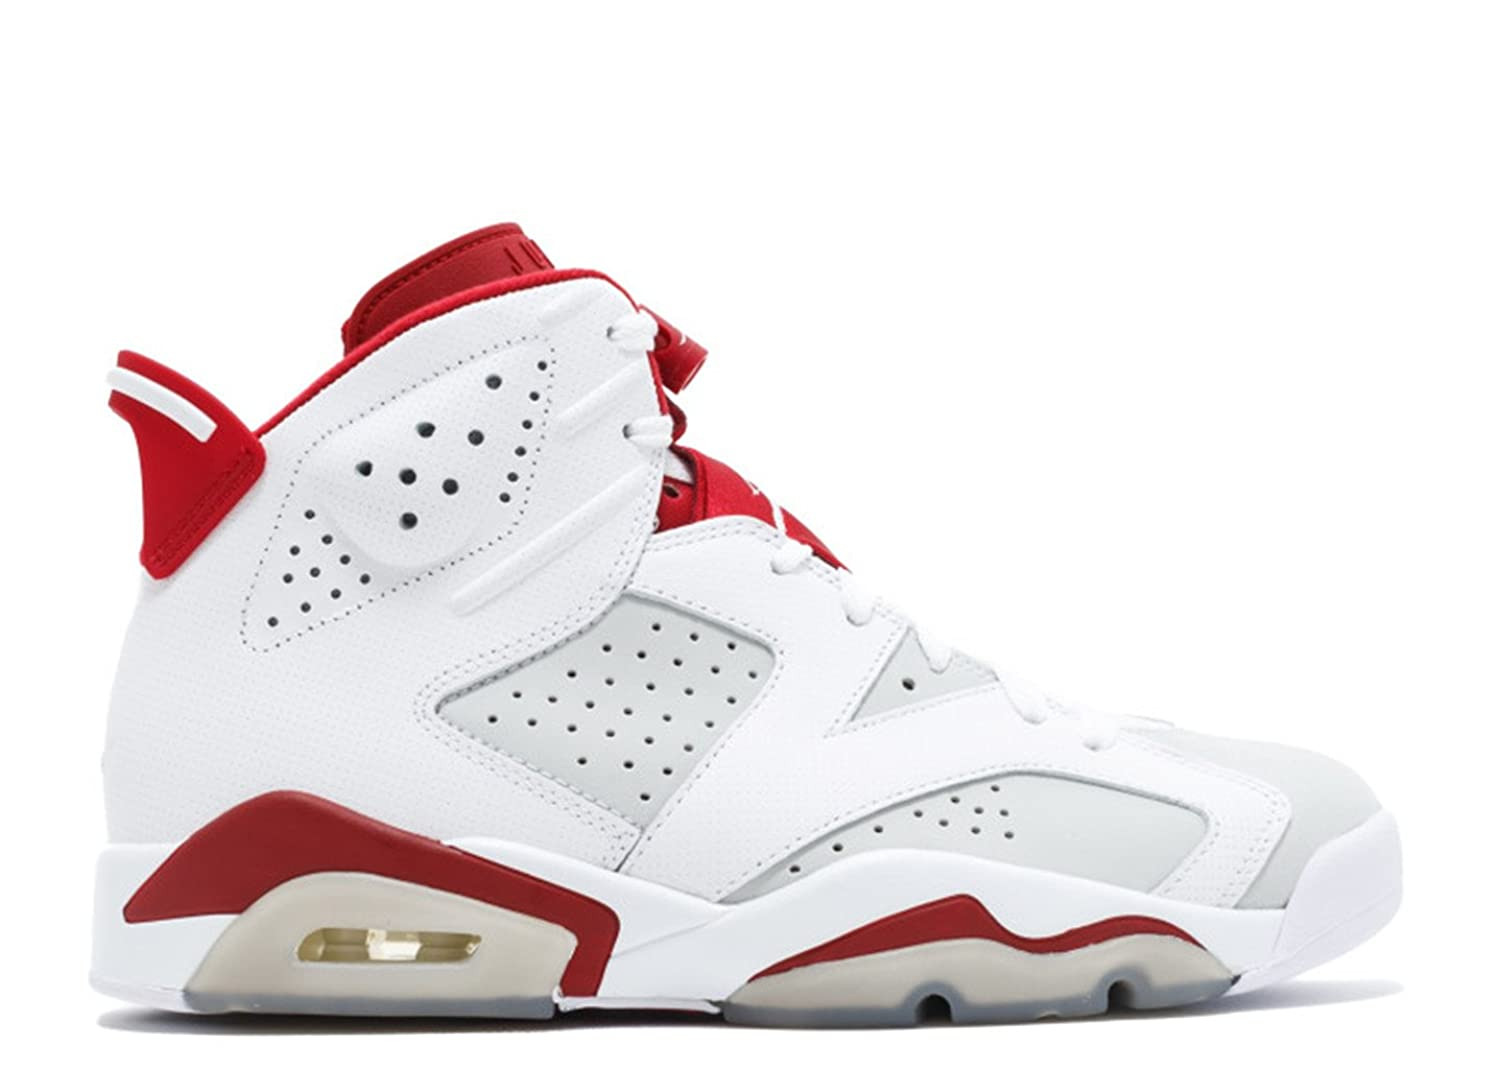 2017 Nike Air Jordan 6 Retro Alternate White Gym Red-Pure Platinum Mens Basketball Shoes